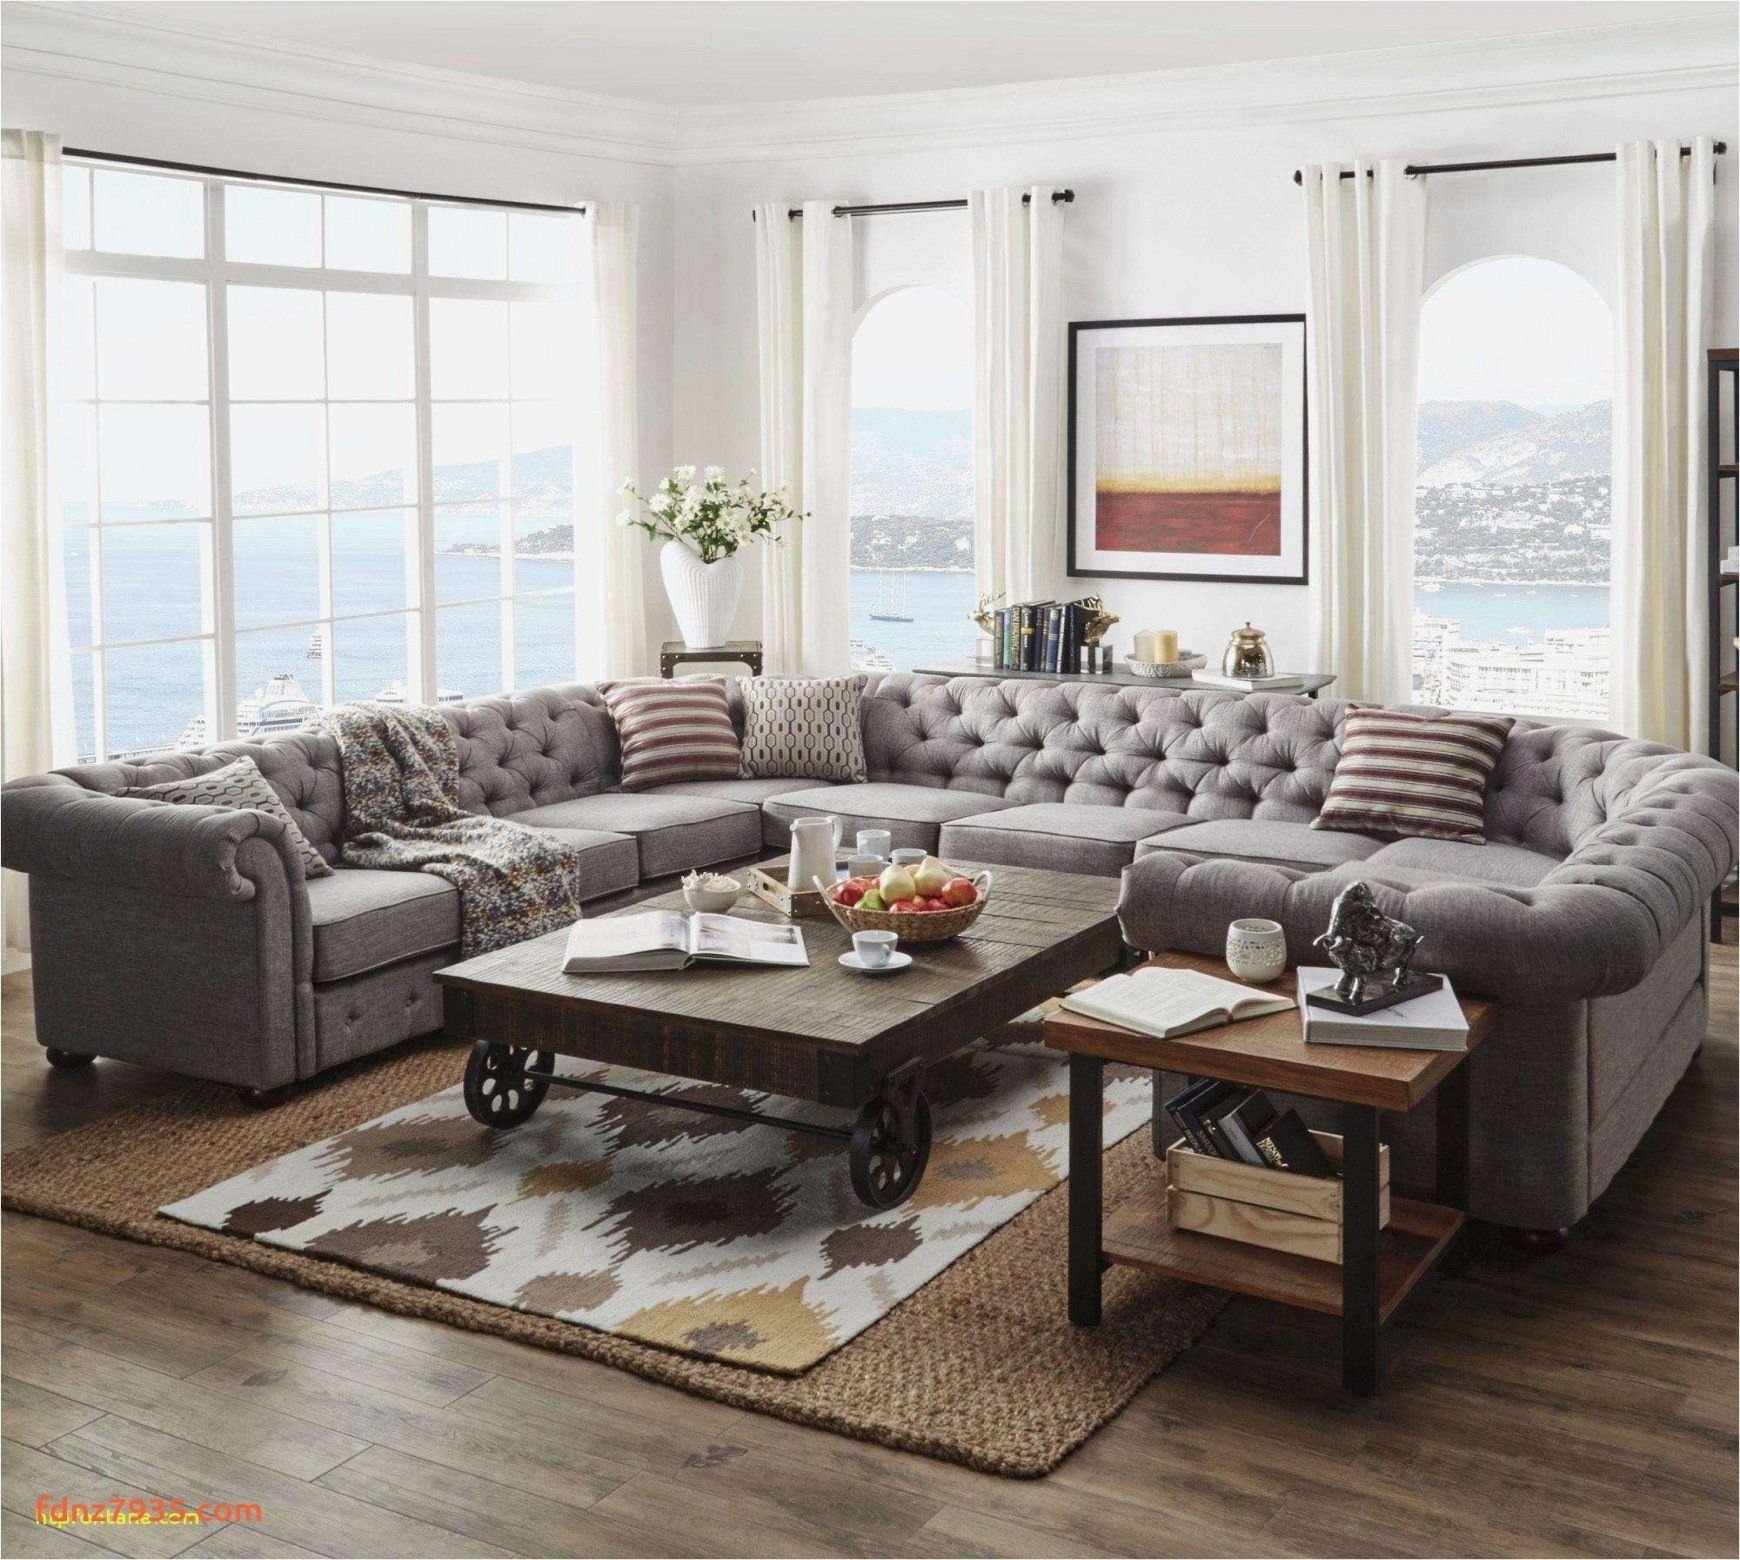 Small Recliners for Bedroom Unique Modern Style Living Room sofas Ideas Living Room Fresh sofa